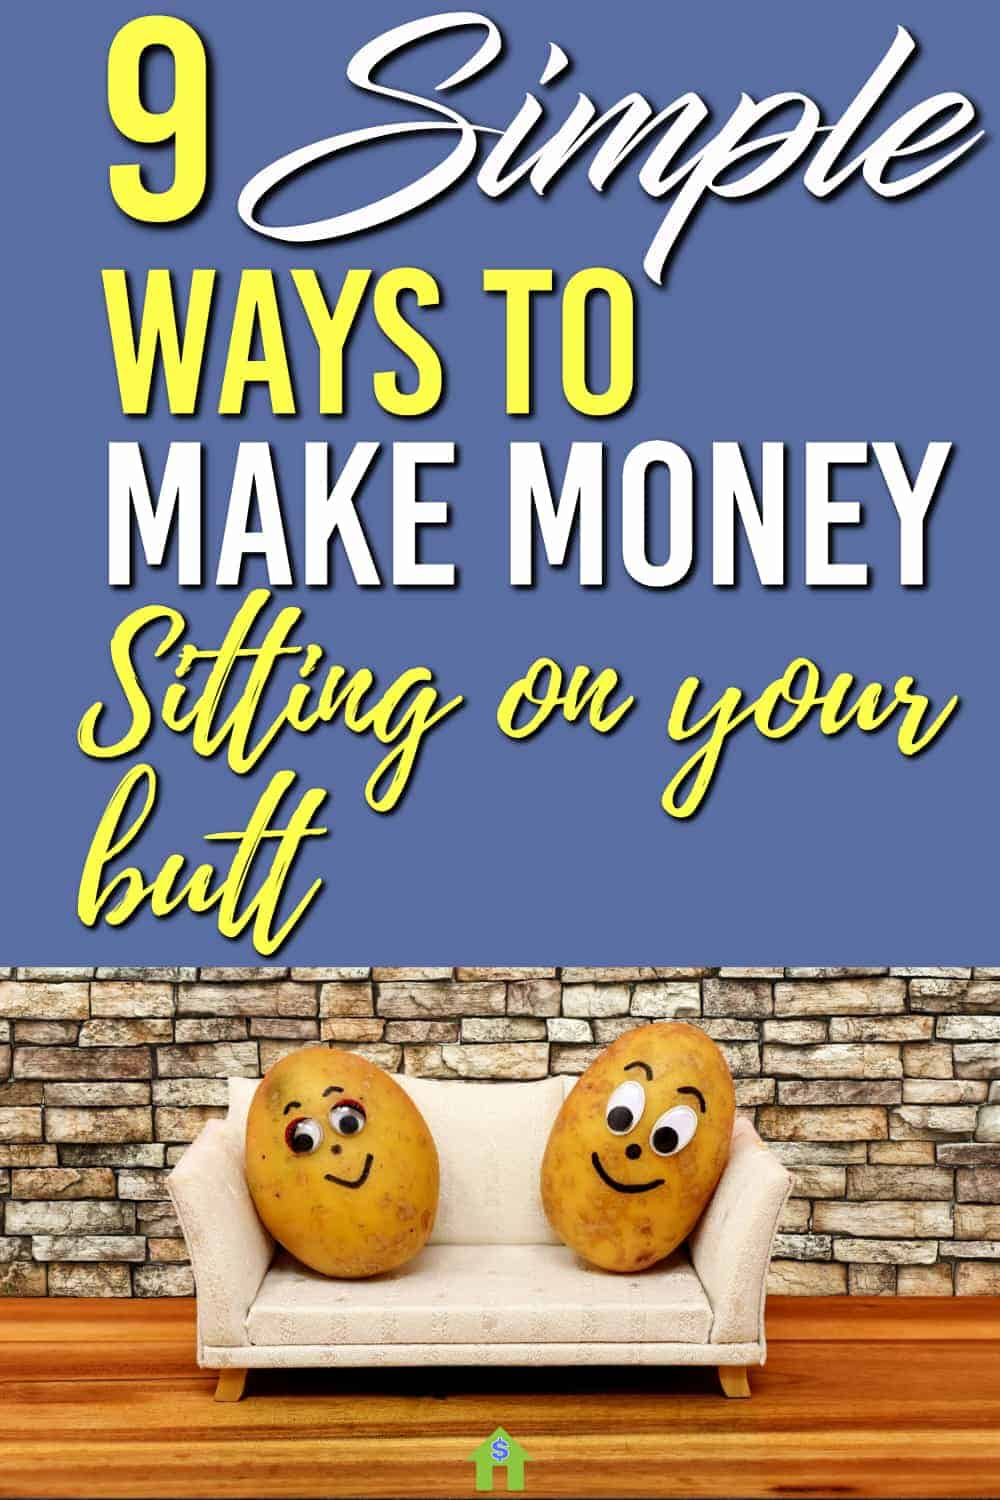 Are you looking for some simple ways to make money sitting on your couch at night? Here are 9+ ideas to put more money in your pockets while you work at home | easy ways to make money | ways to money | ways to make more money | ways to make money online | ways to make easy money | best ways to make money make money easy |  #makemoneyonline #makemoney #earnmoney #money #personalfinance